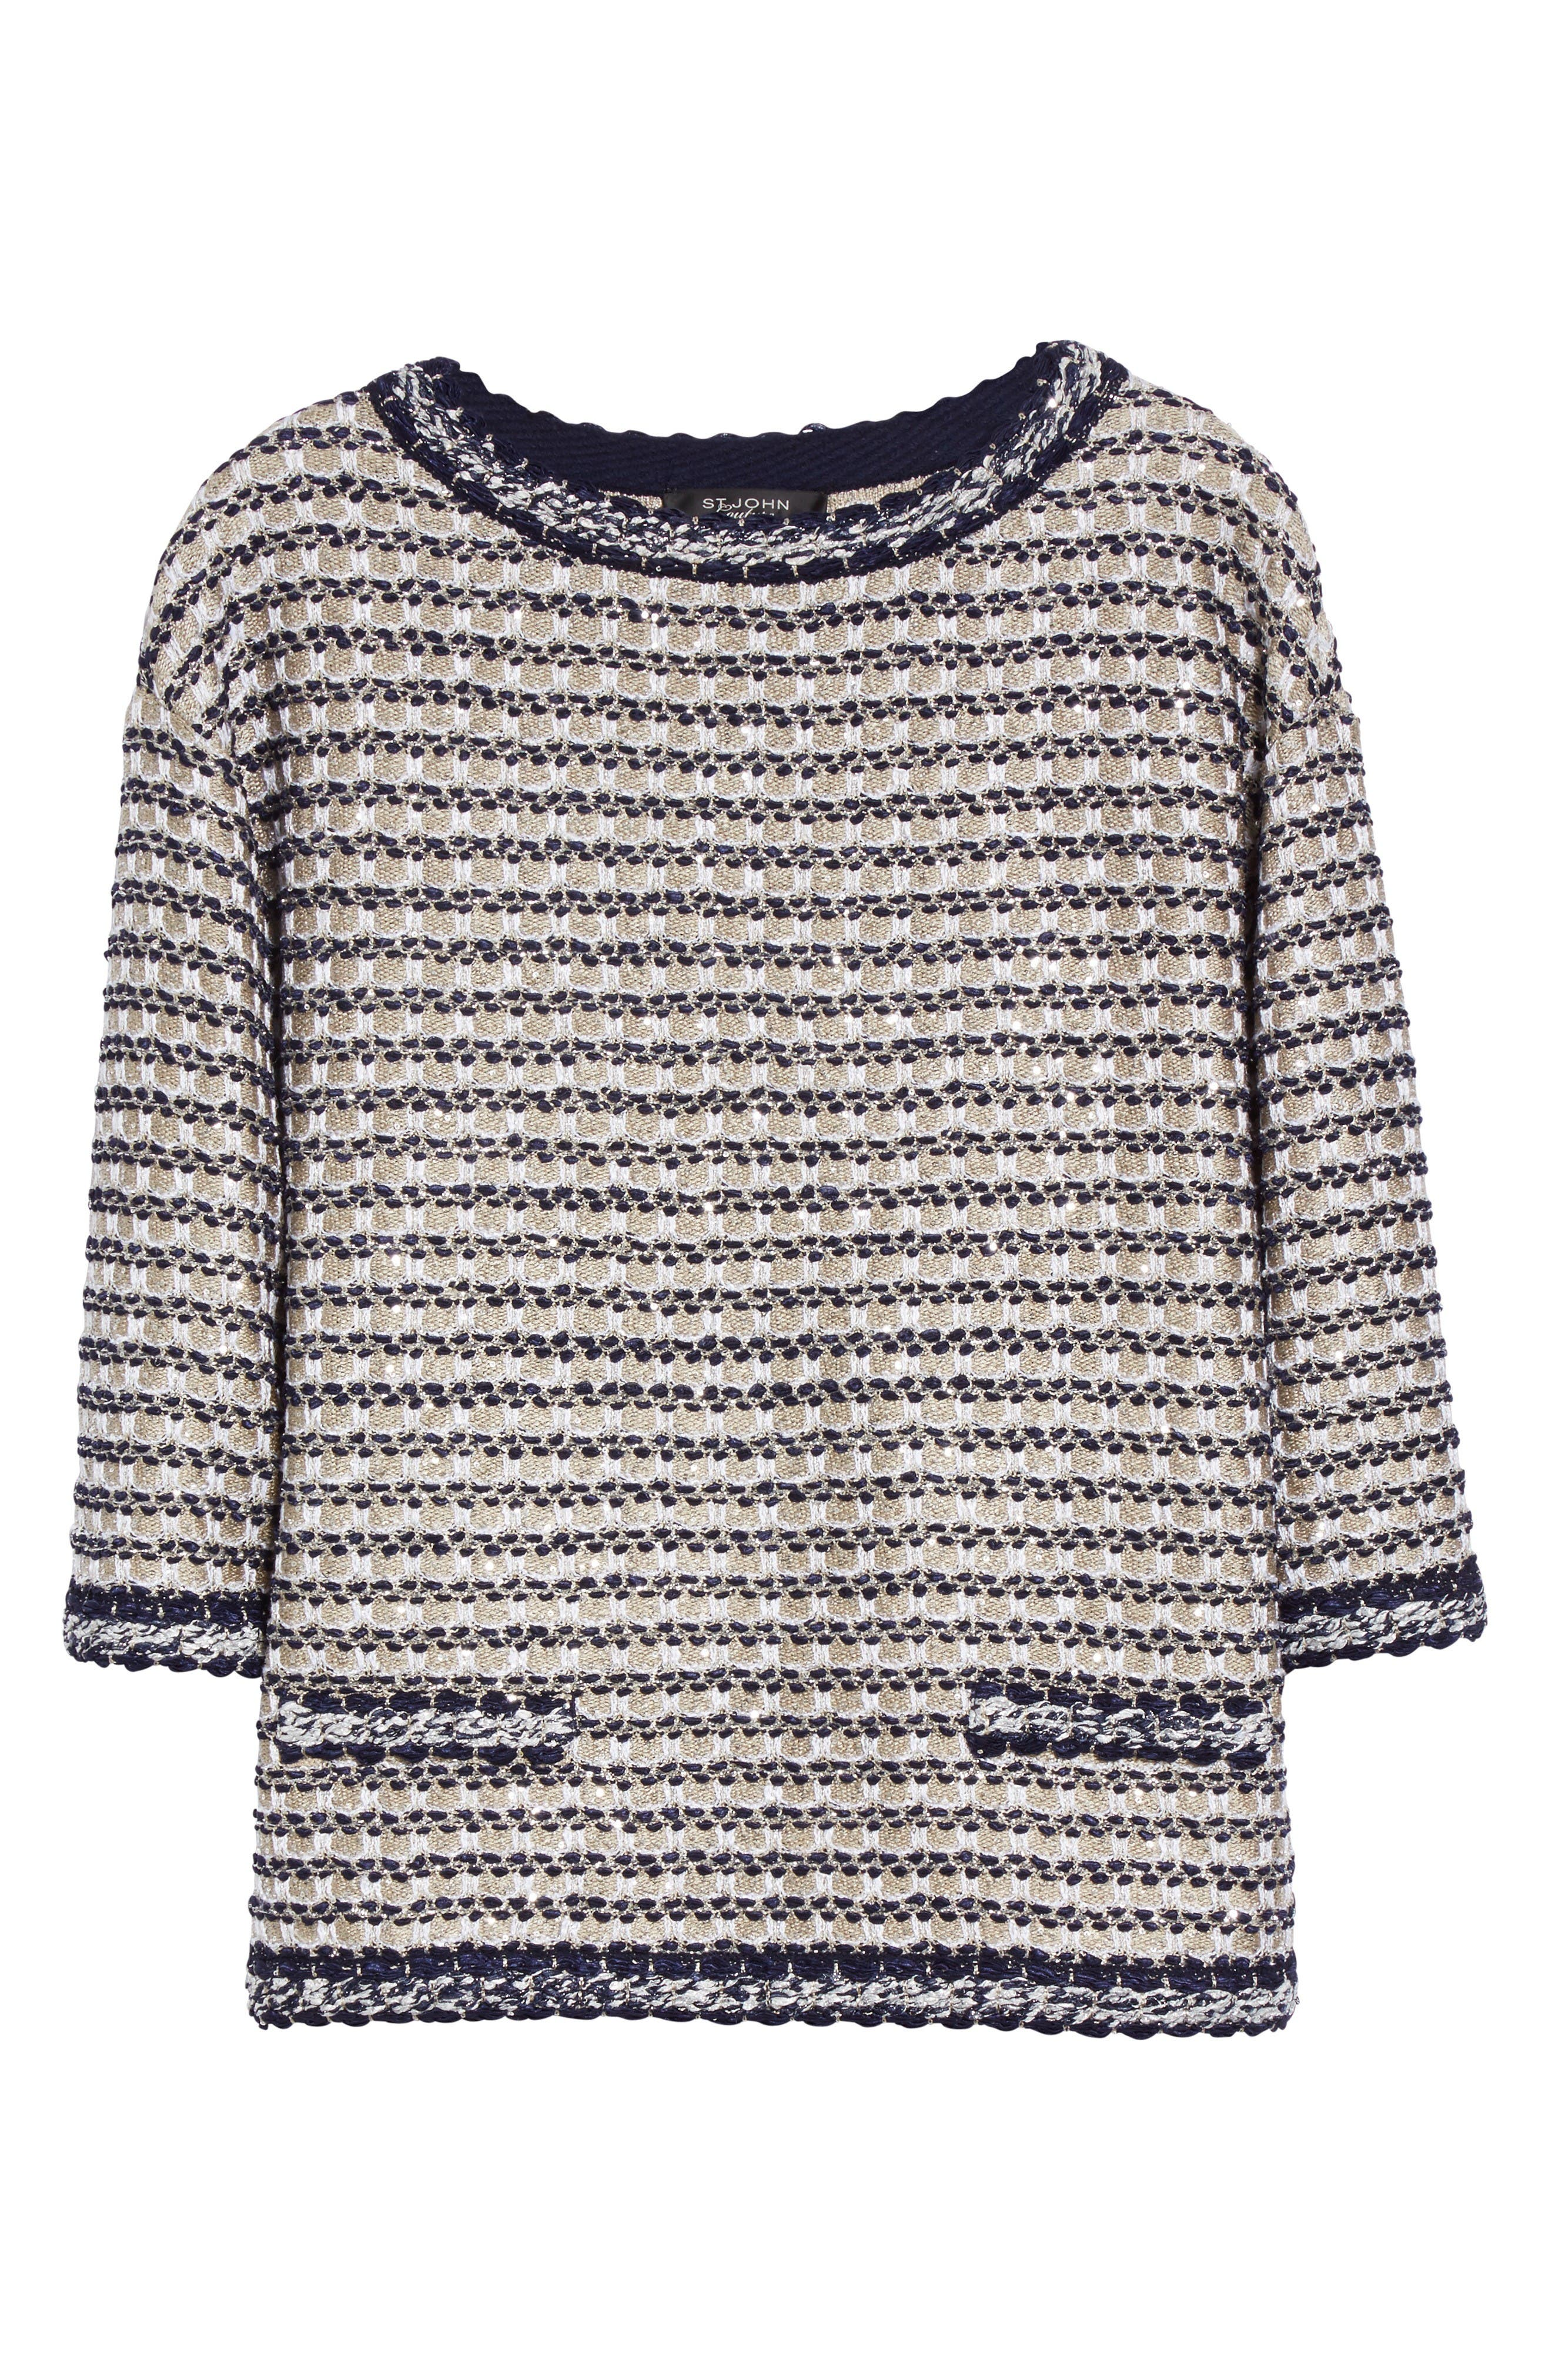 Vany Tweed Knit Top,                             Alternate thumbnail 7, color,                             Gold Multi